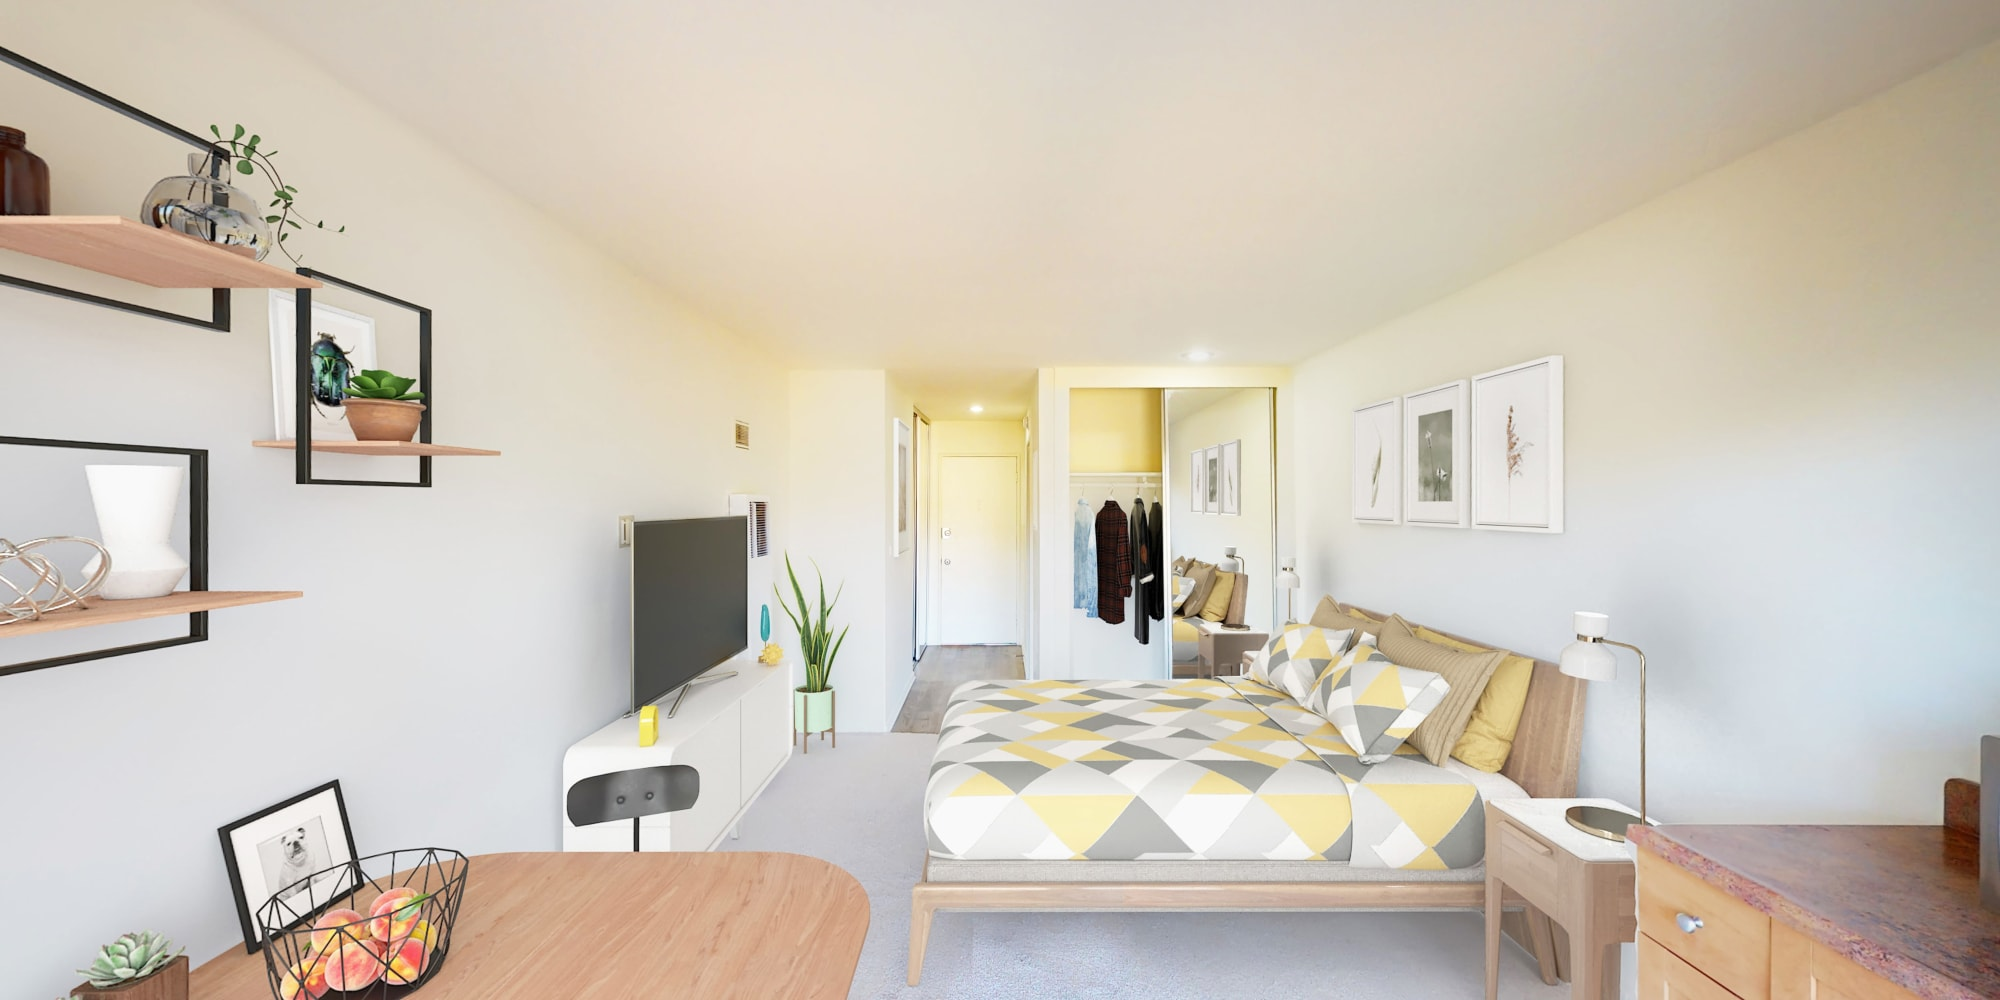 View from balcony to living space in a efficiency at West Park Village in Los Angeles, California